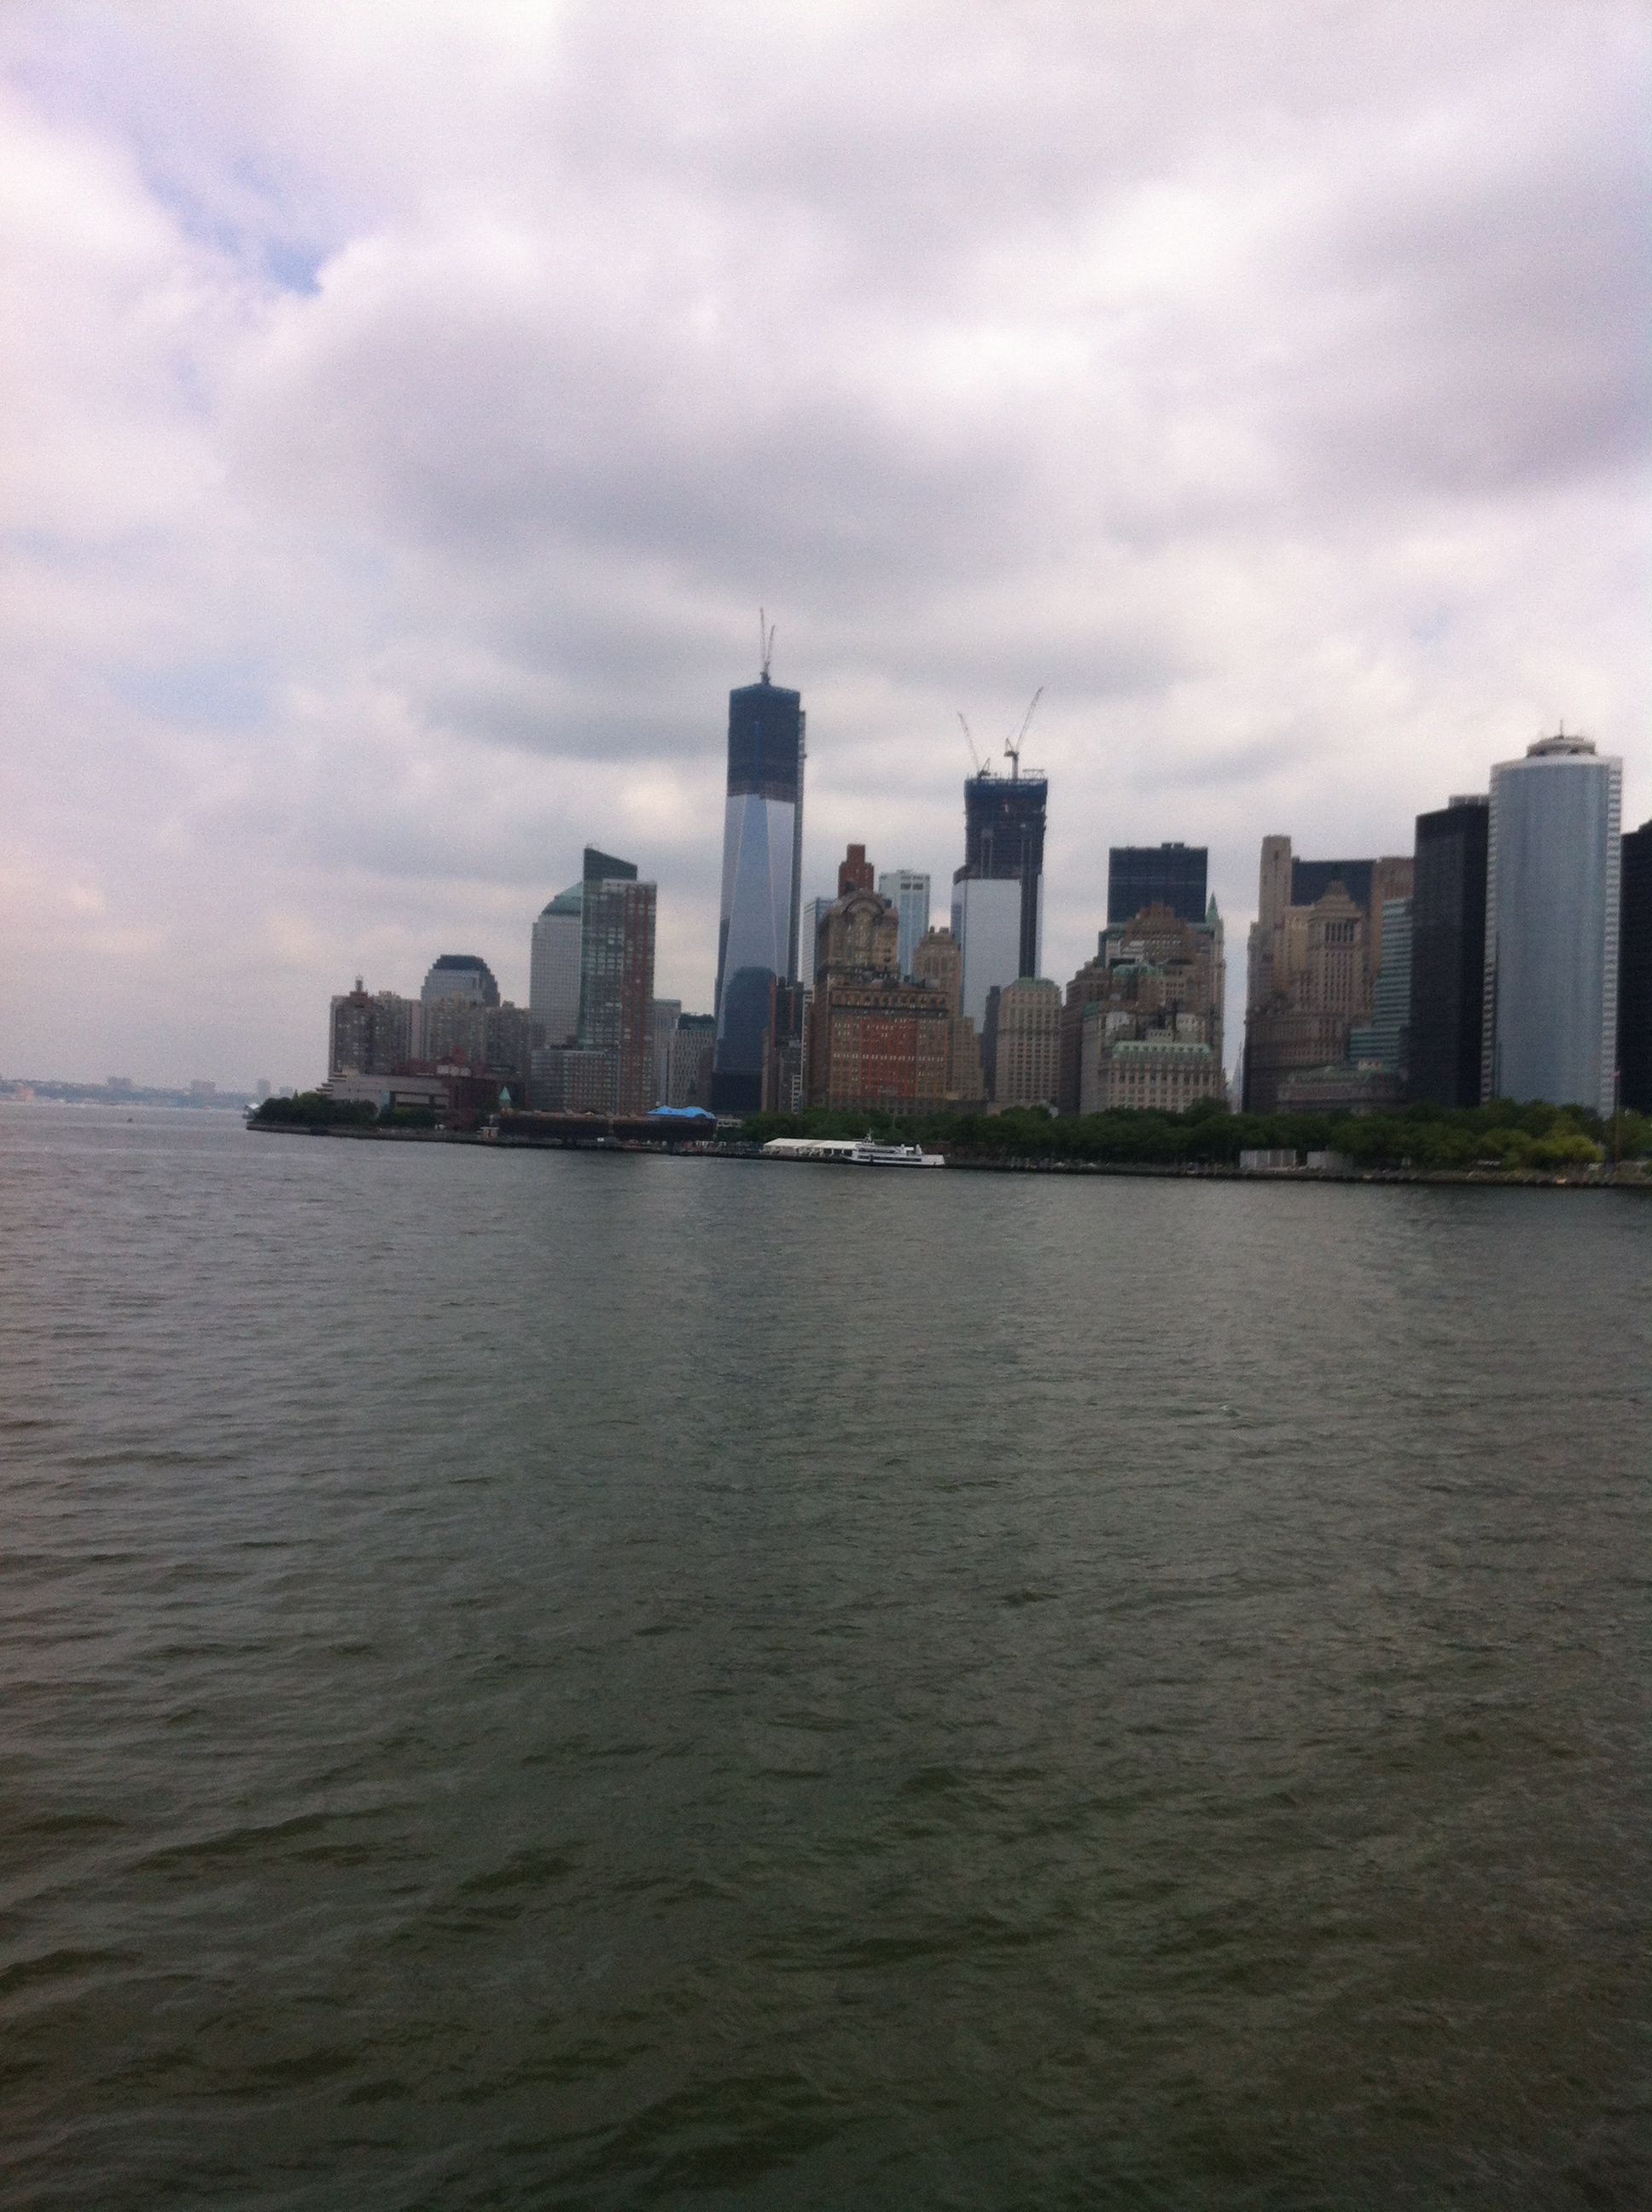 On my way to Staten Island for a ride.